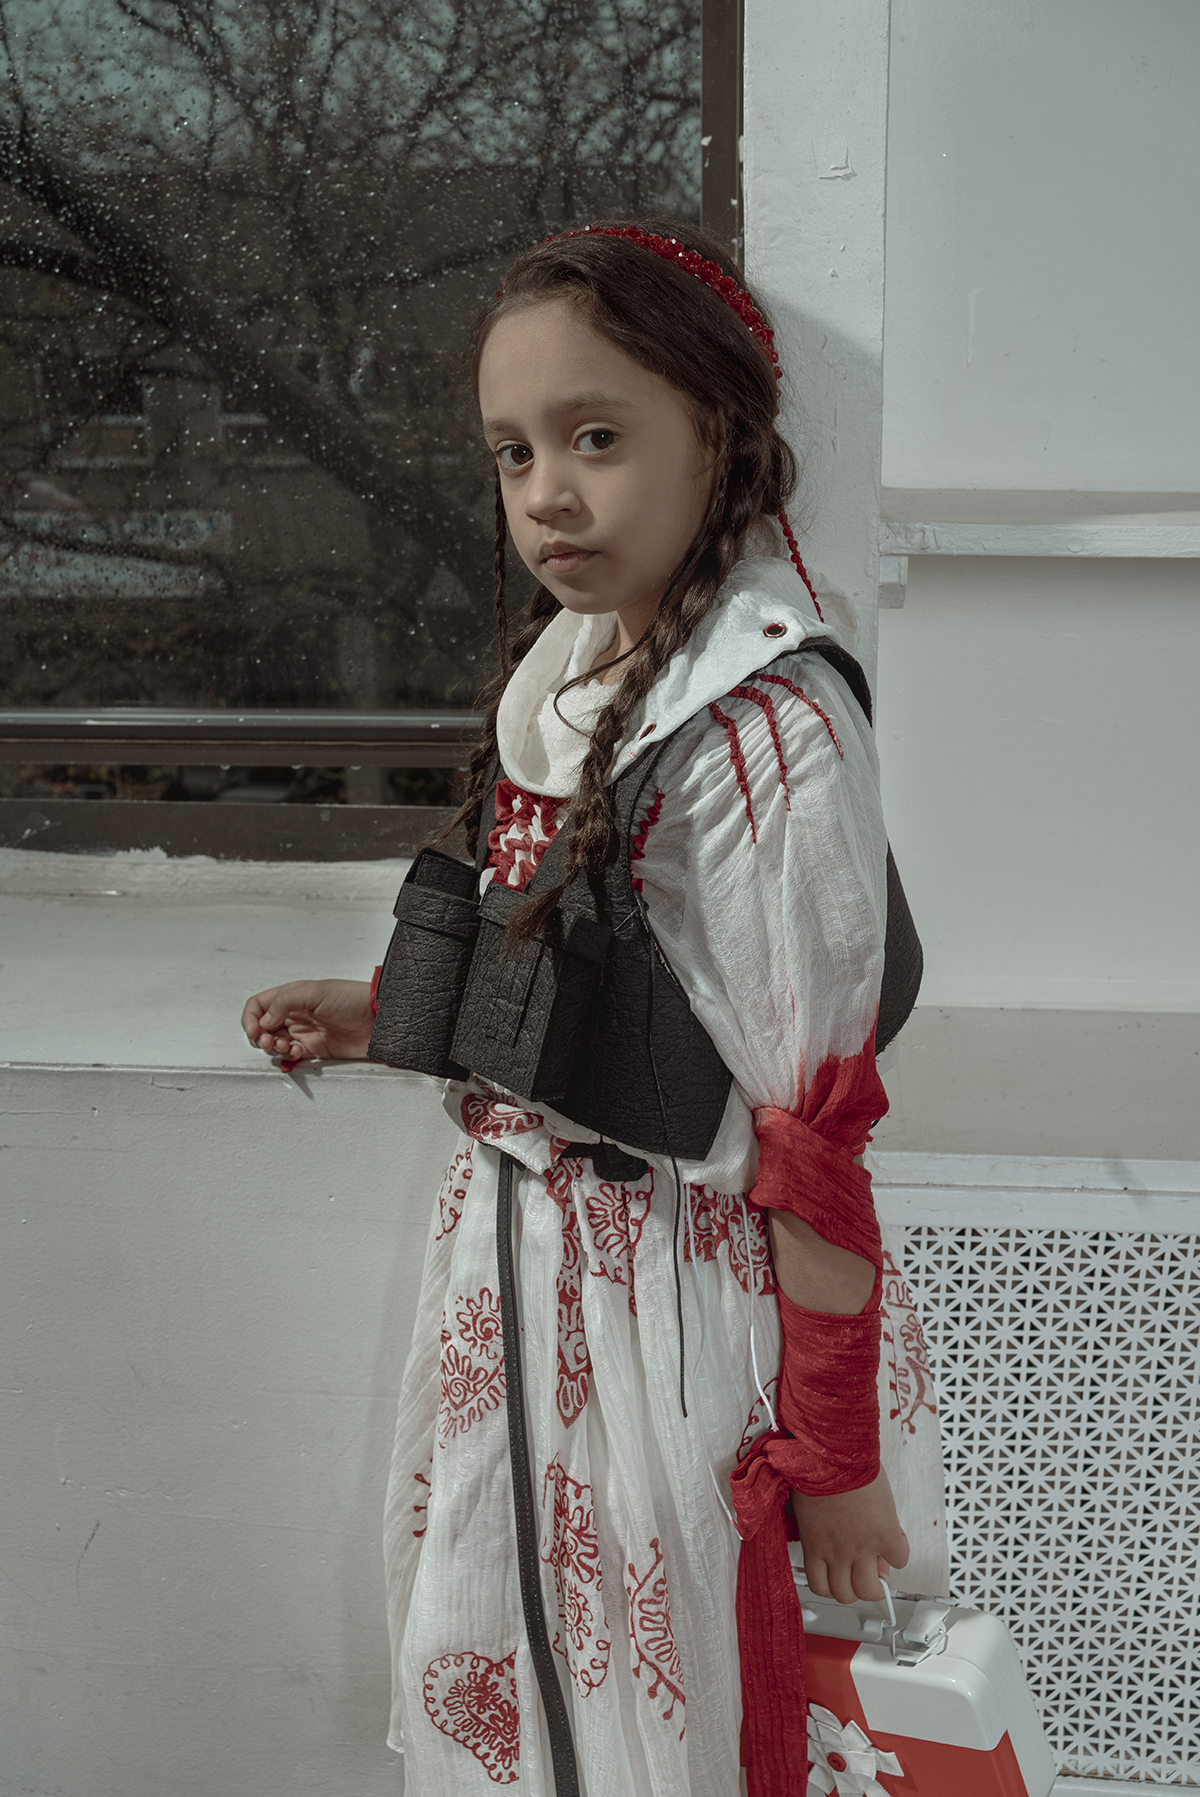 An eight-year-old brown hair girl holding a first-aid box, wearing a turtle neck white silky blouse, a red heart pattern printed box pleat skirt and a black vest, standing aside of a rainy window.